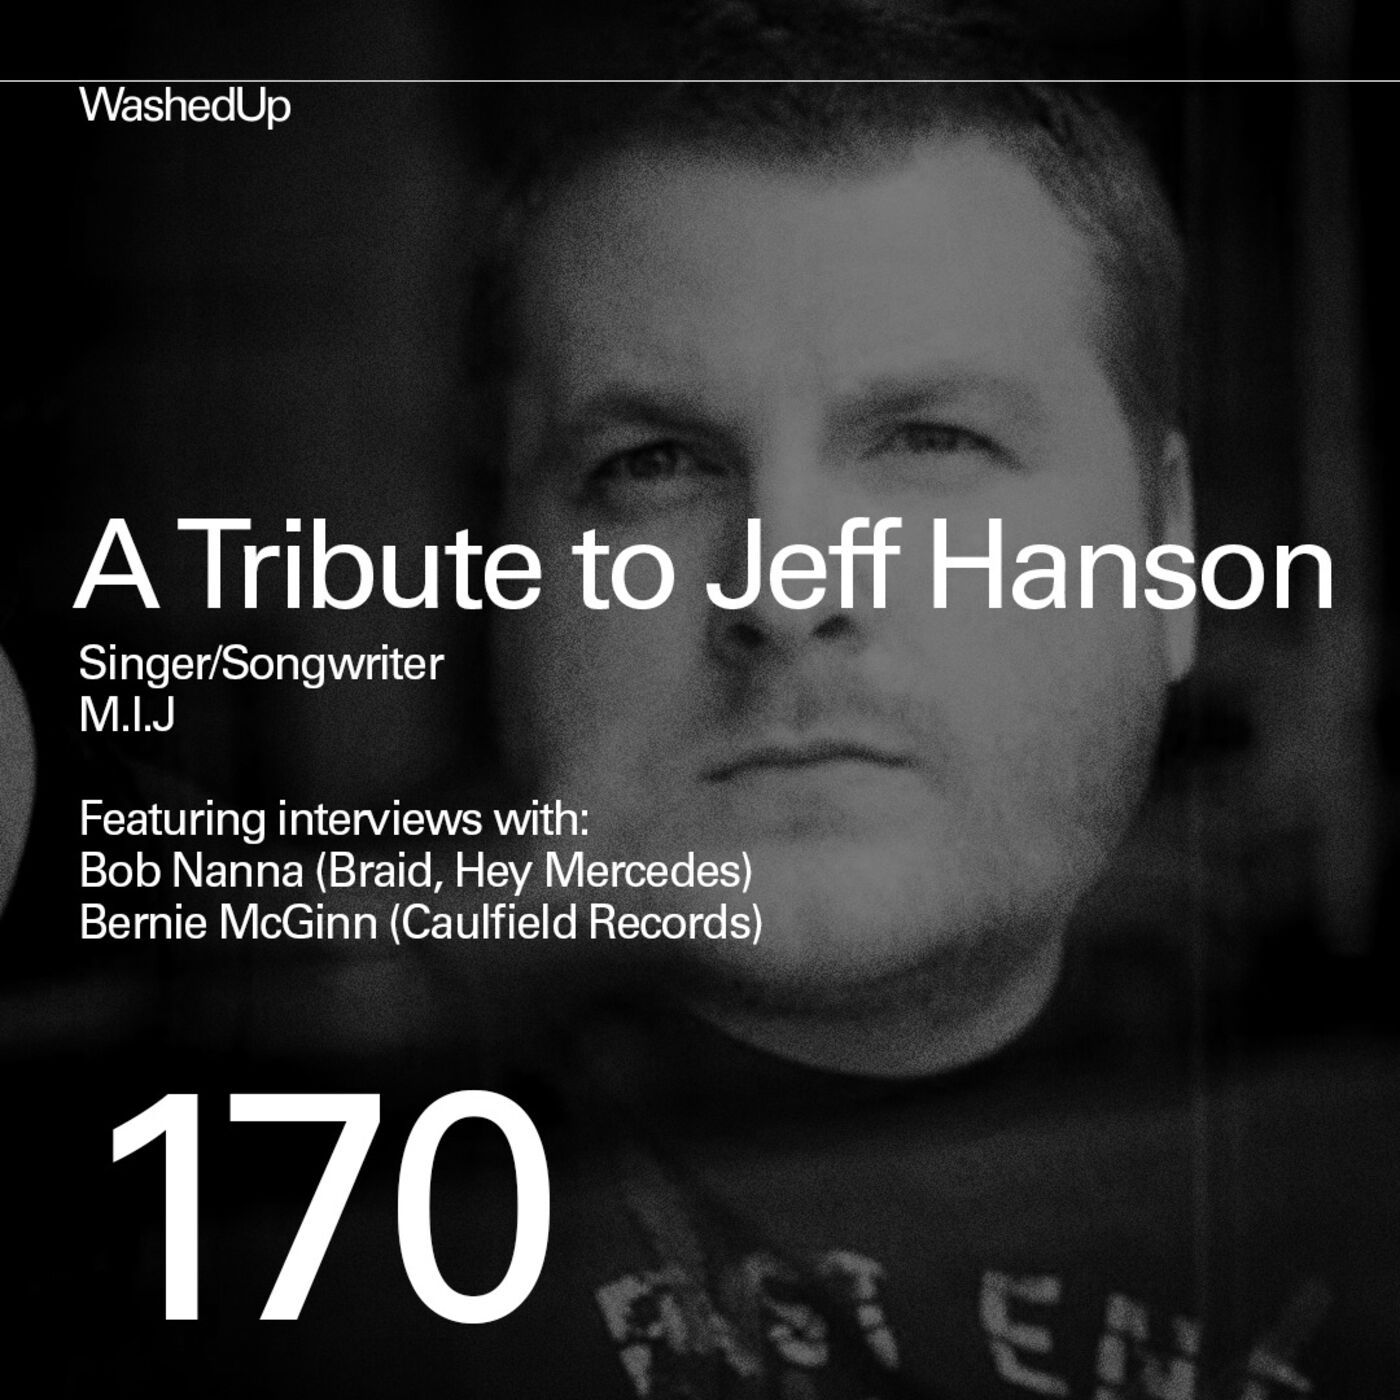 #170 - A Tribute to Jeff Hanson (Singer, Songwriter, M.I.J)